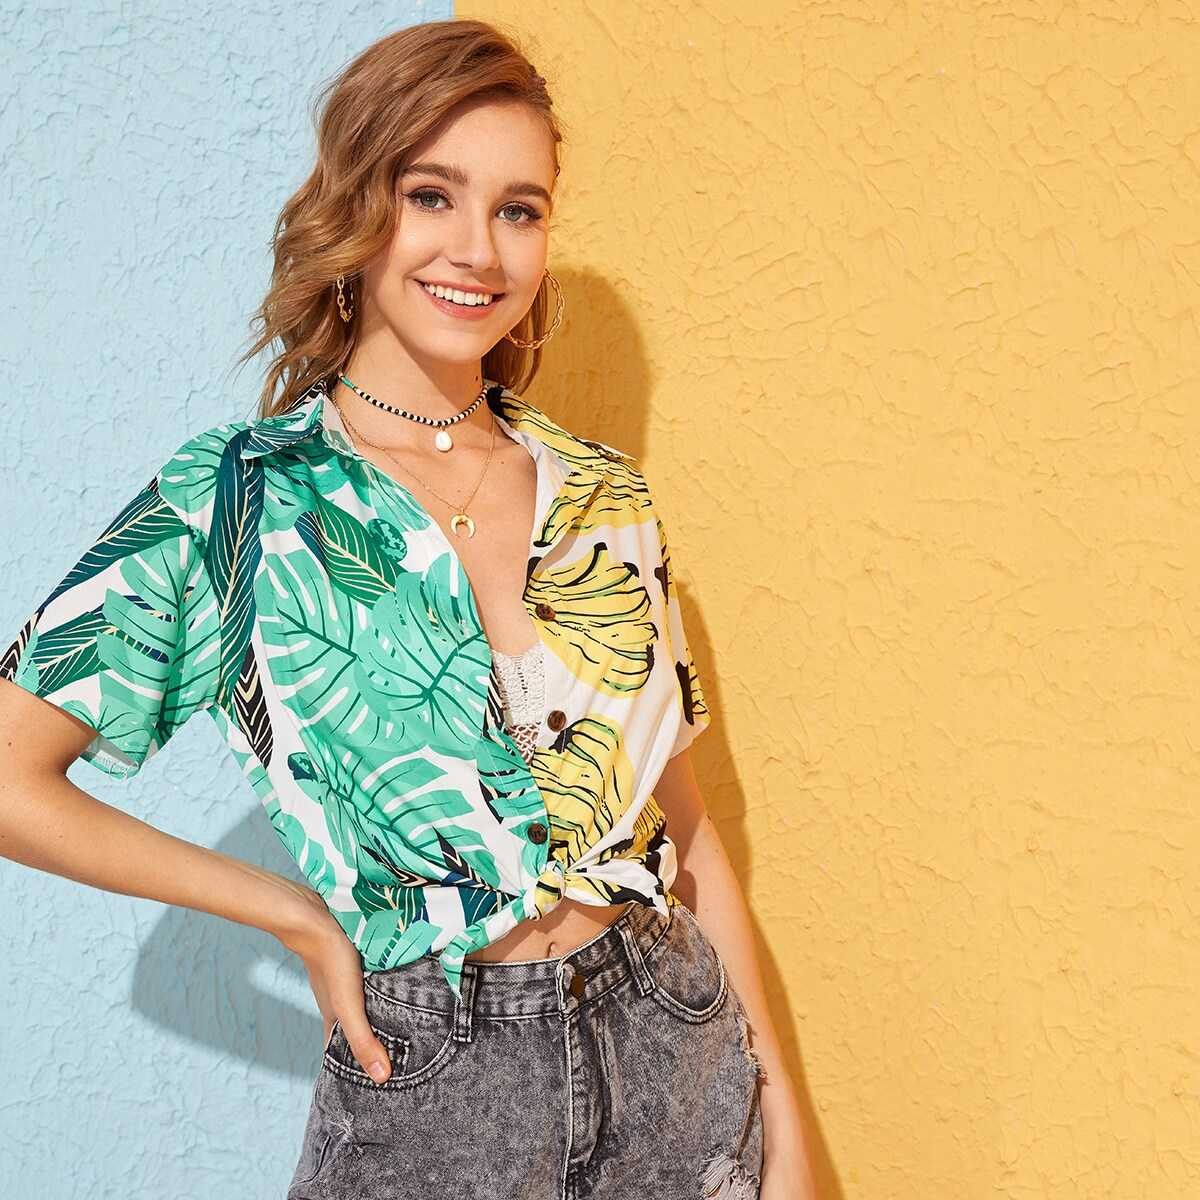 Banana & Tropical Print Blouse in Multicolor by ROMWE on GOOFASH